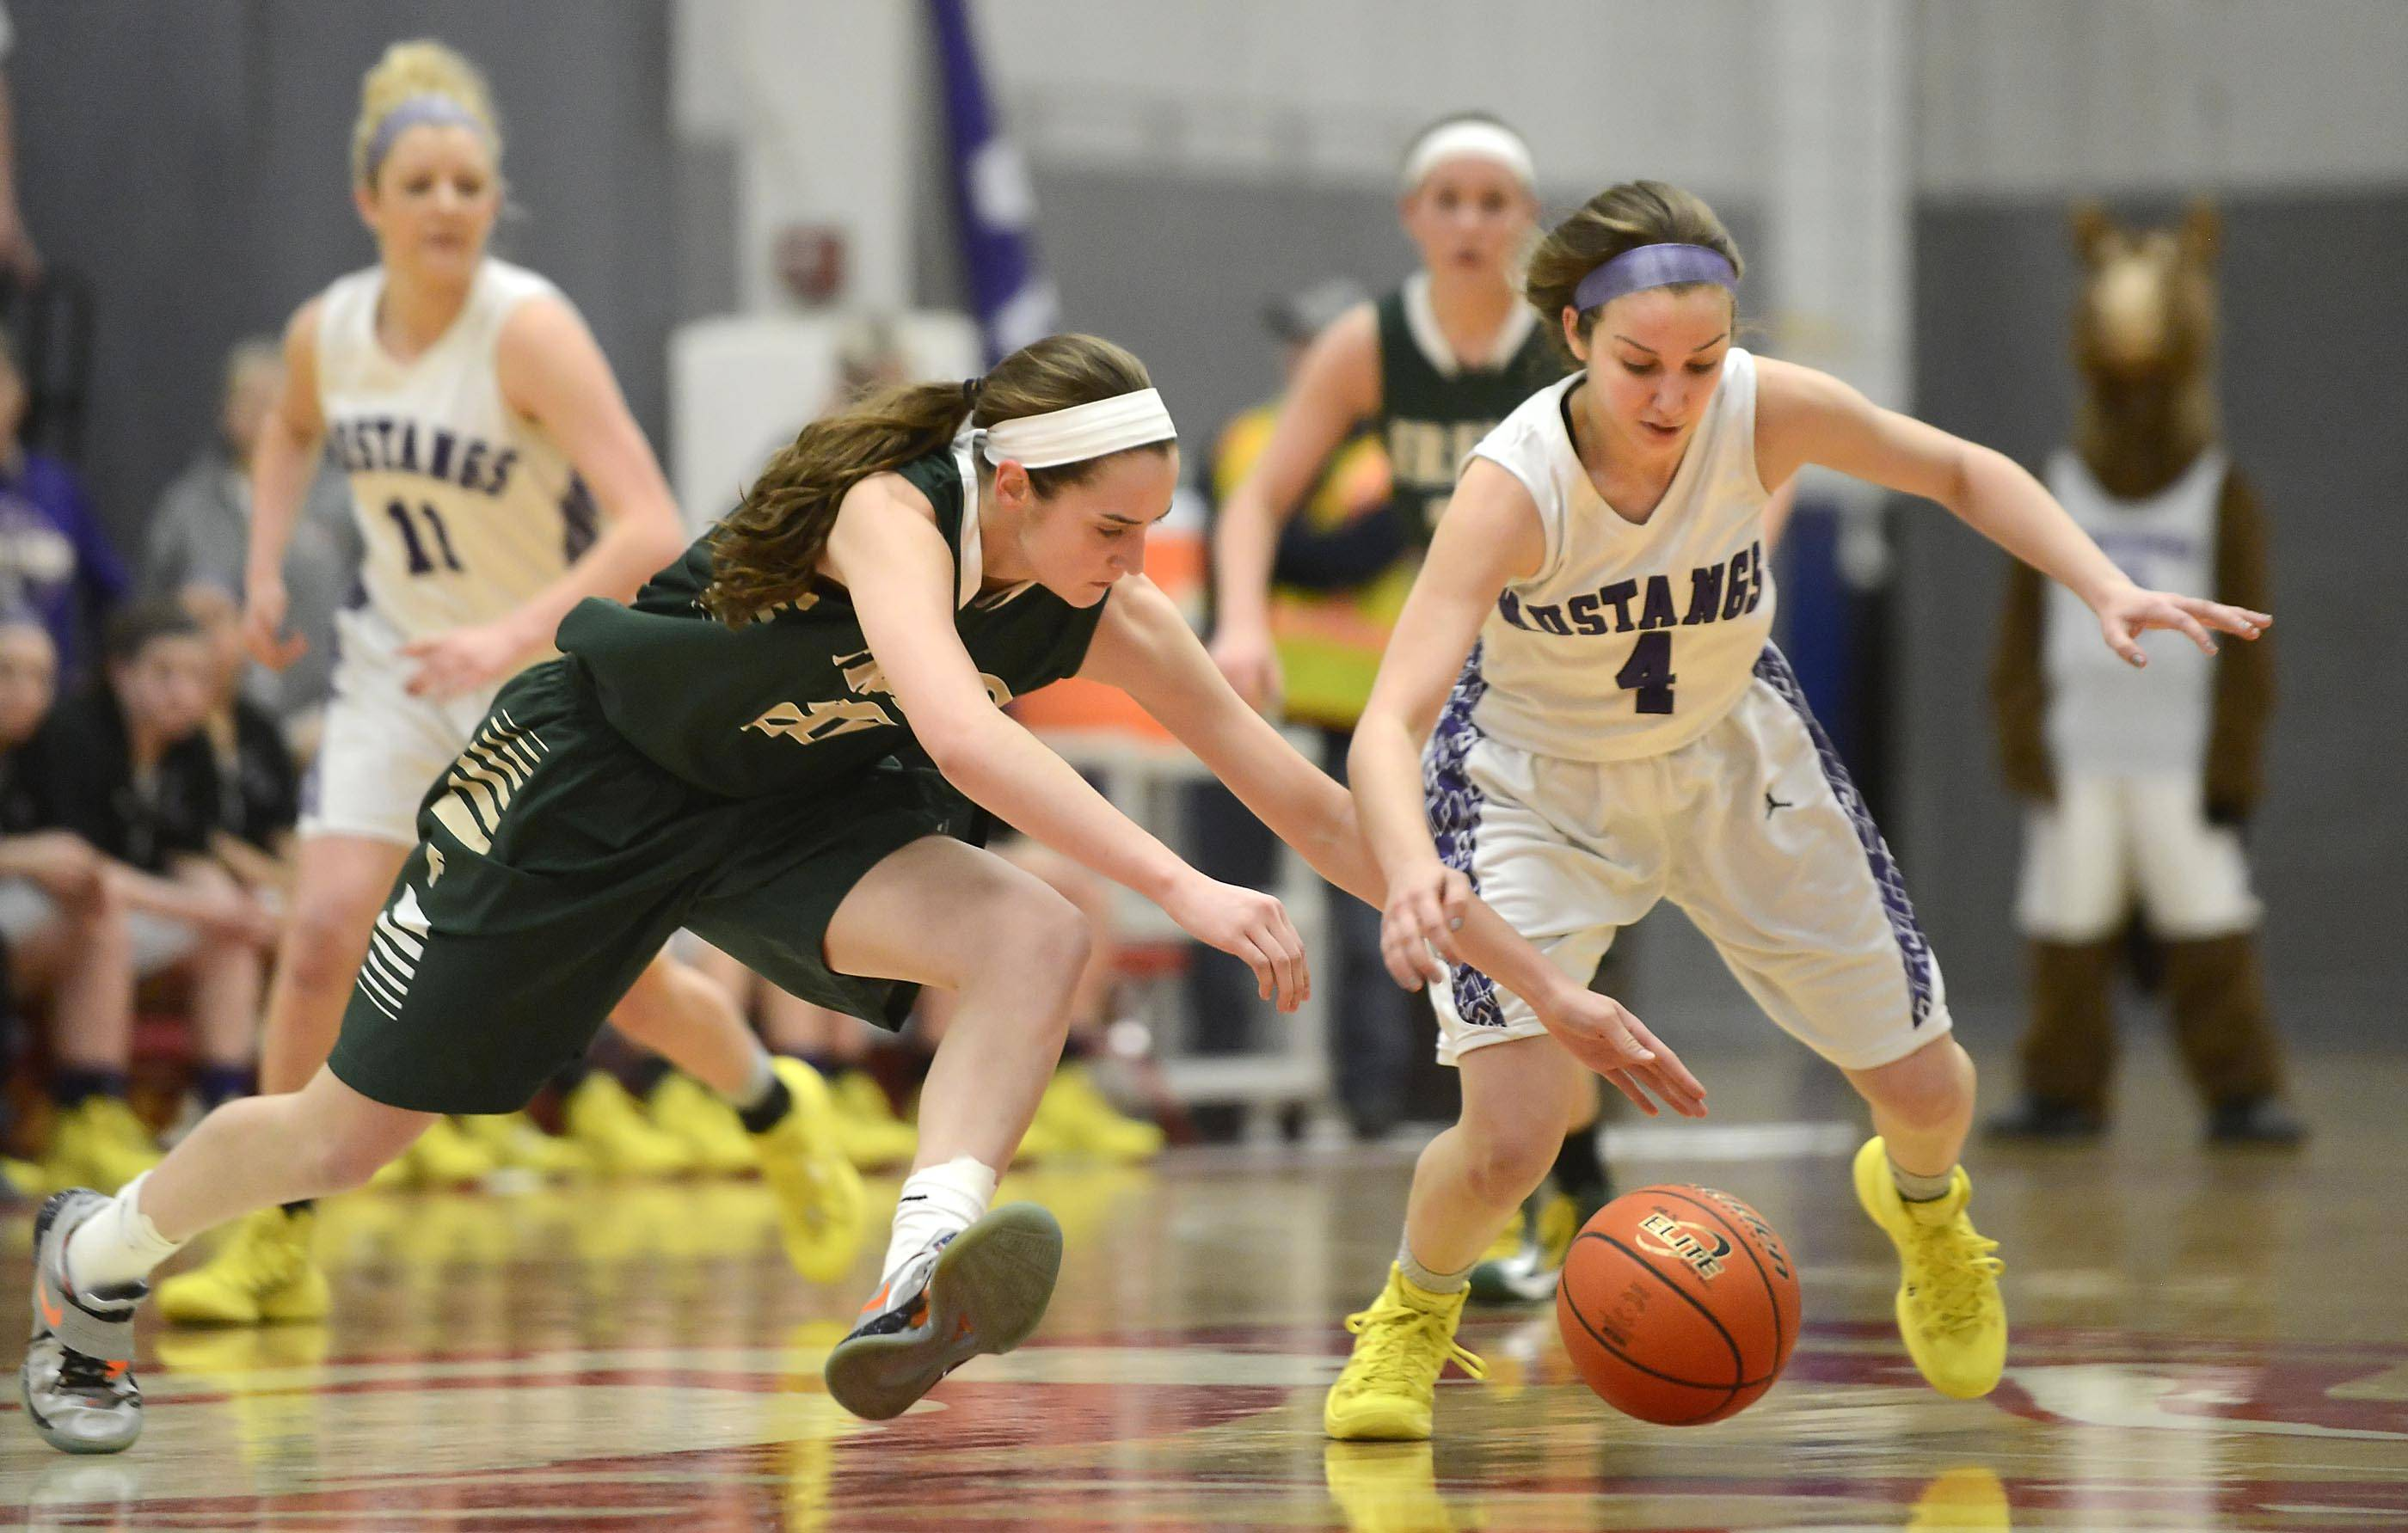 Fremd's Haley Gorecki and Rolling Meadows' Sami Kay charge for the ball after Gorecki knocked it loose Thursday in the Barrington Class 4A sectional championship game.